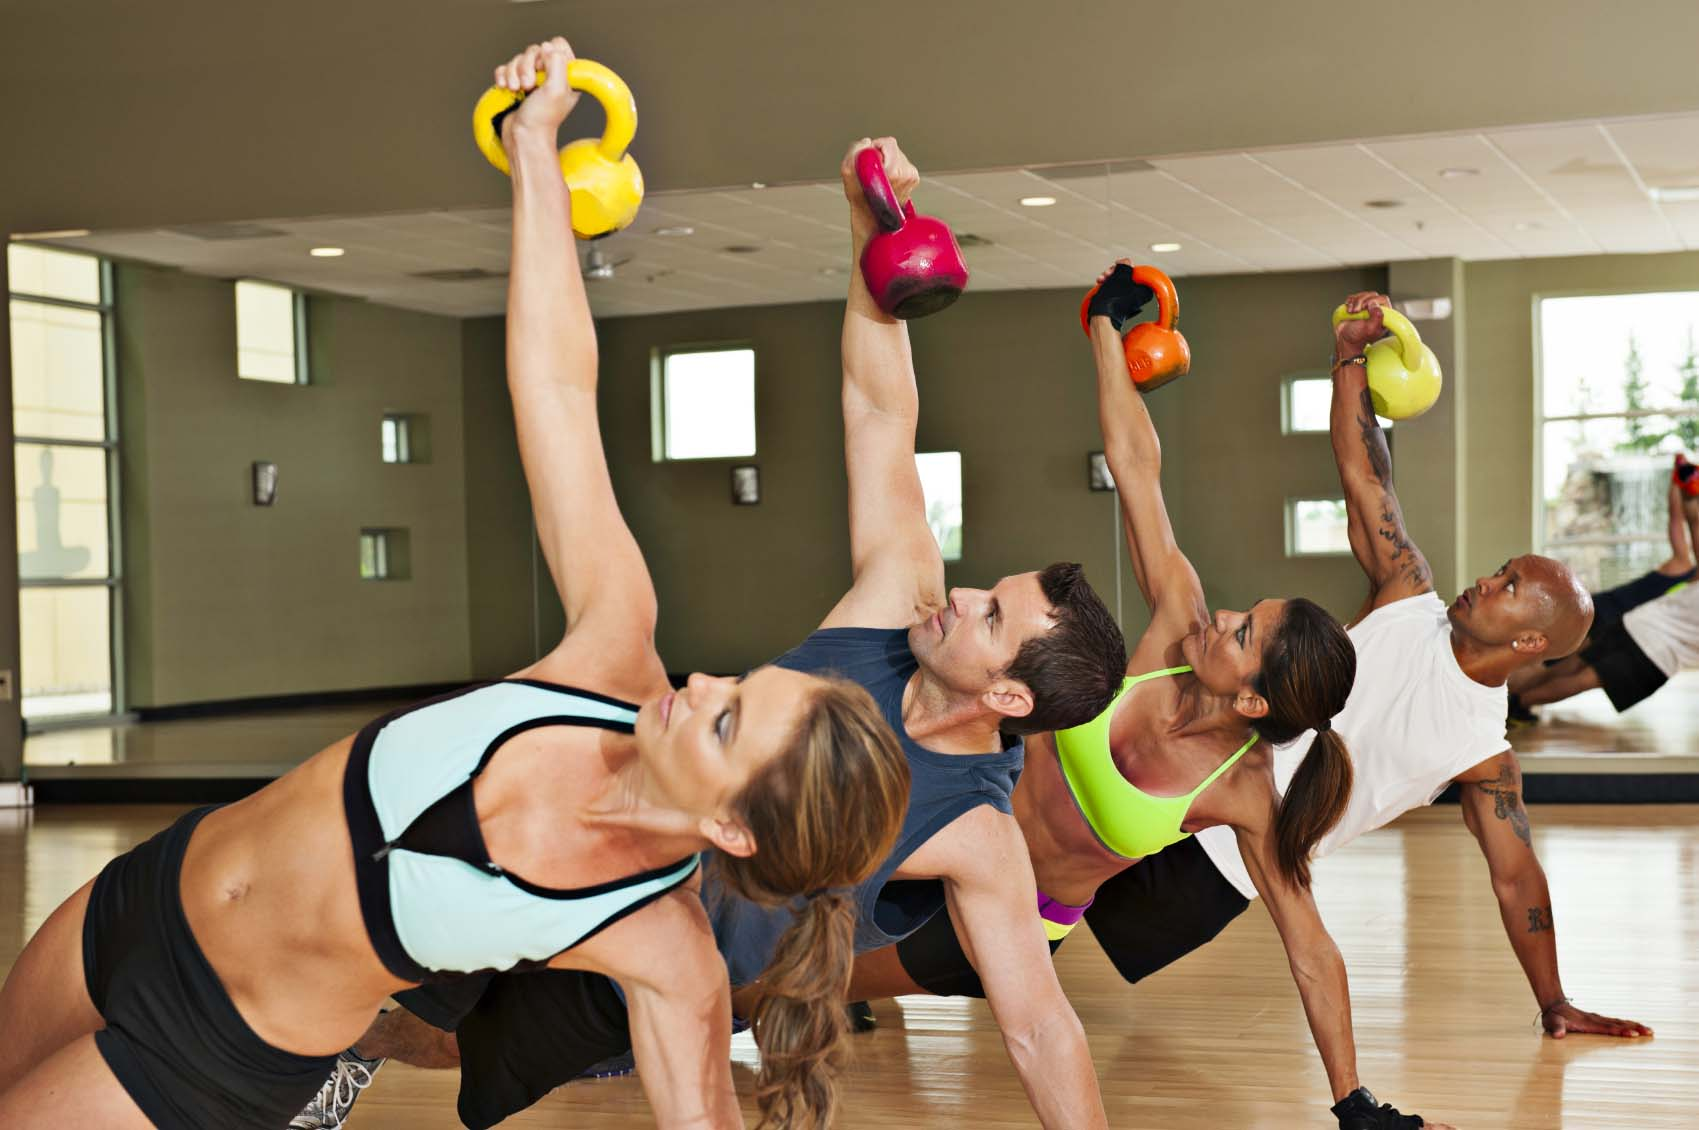 https://way4you.com.ua/images/upload/Kettlebell-Clas%20way4you.jpg